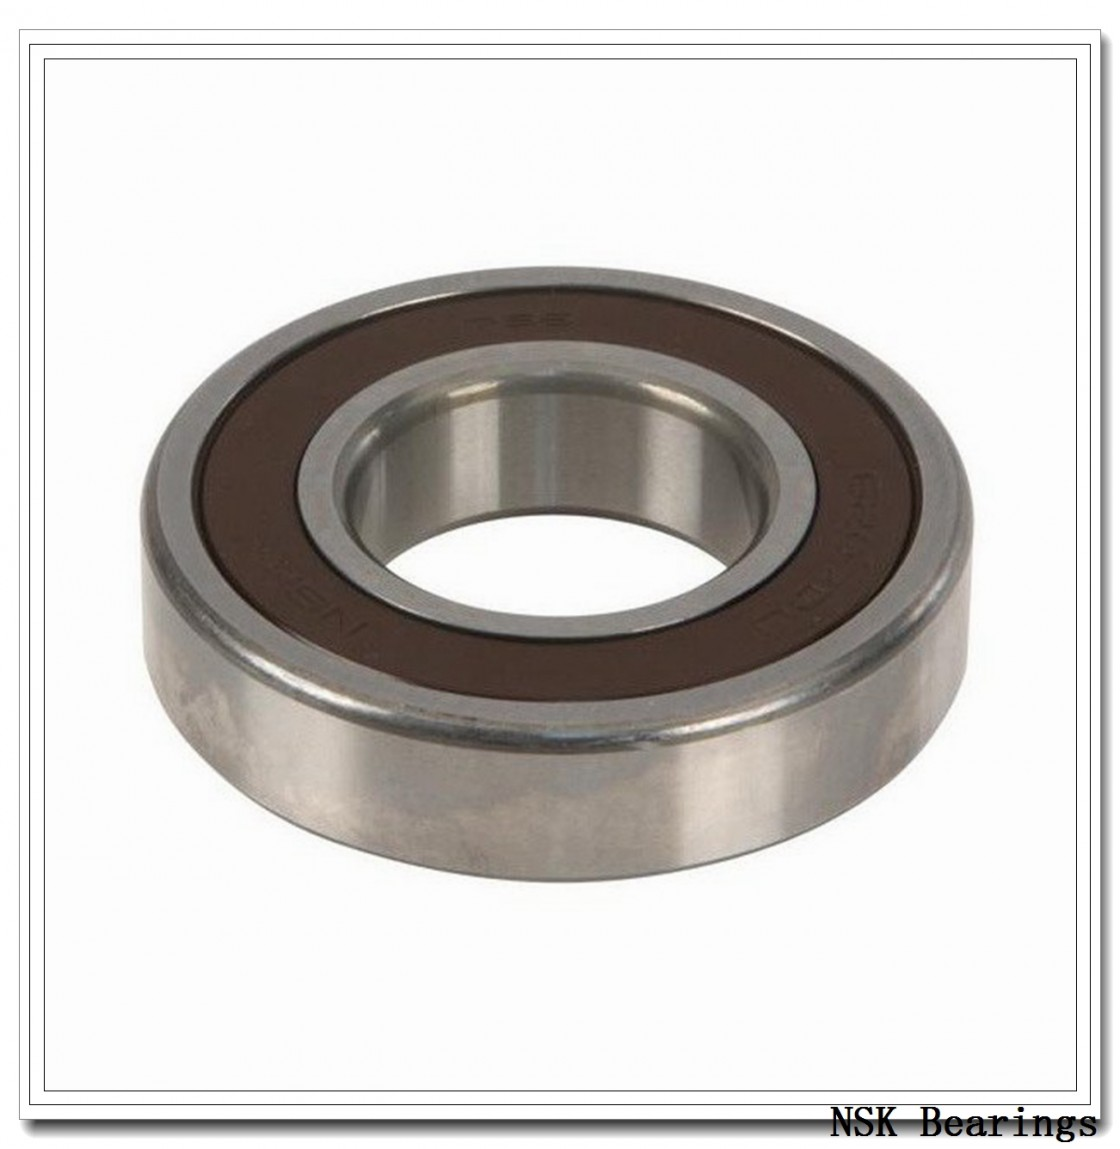 NSK 14130/14274 tapered roller bearings